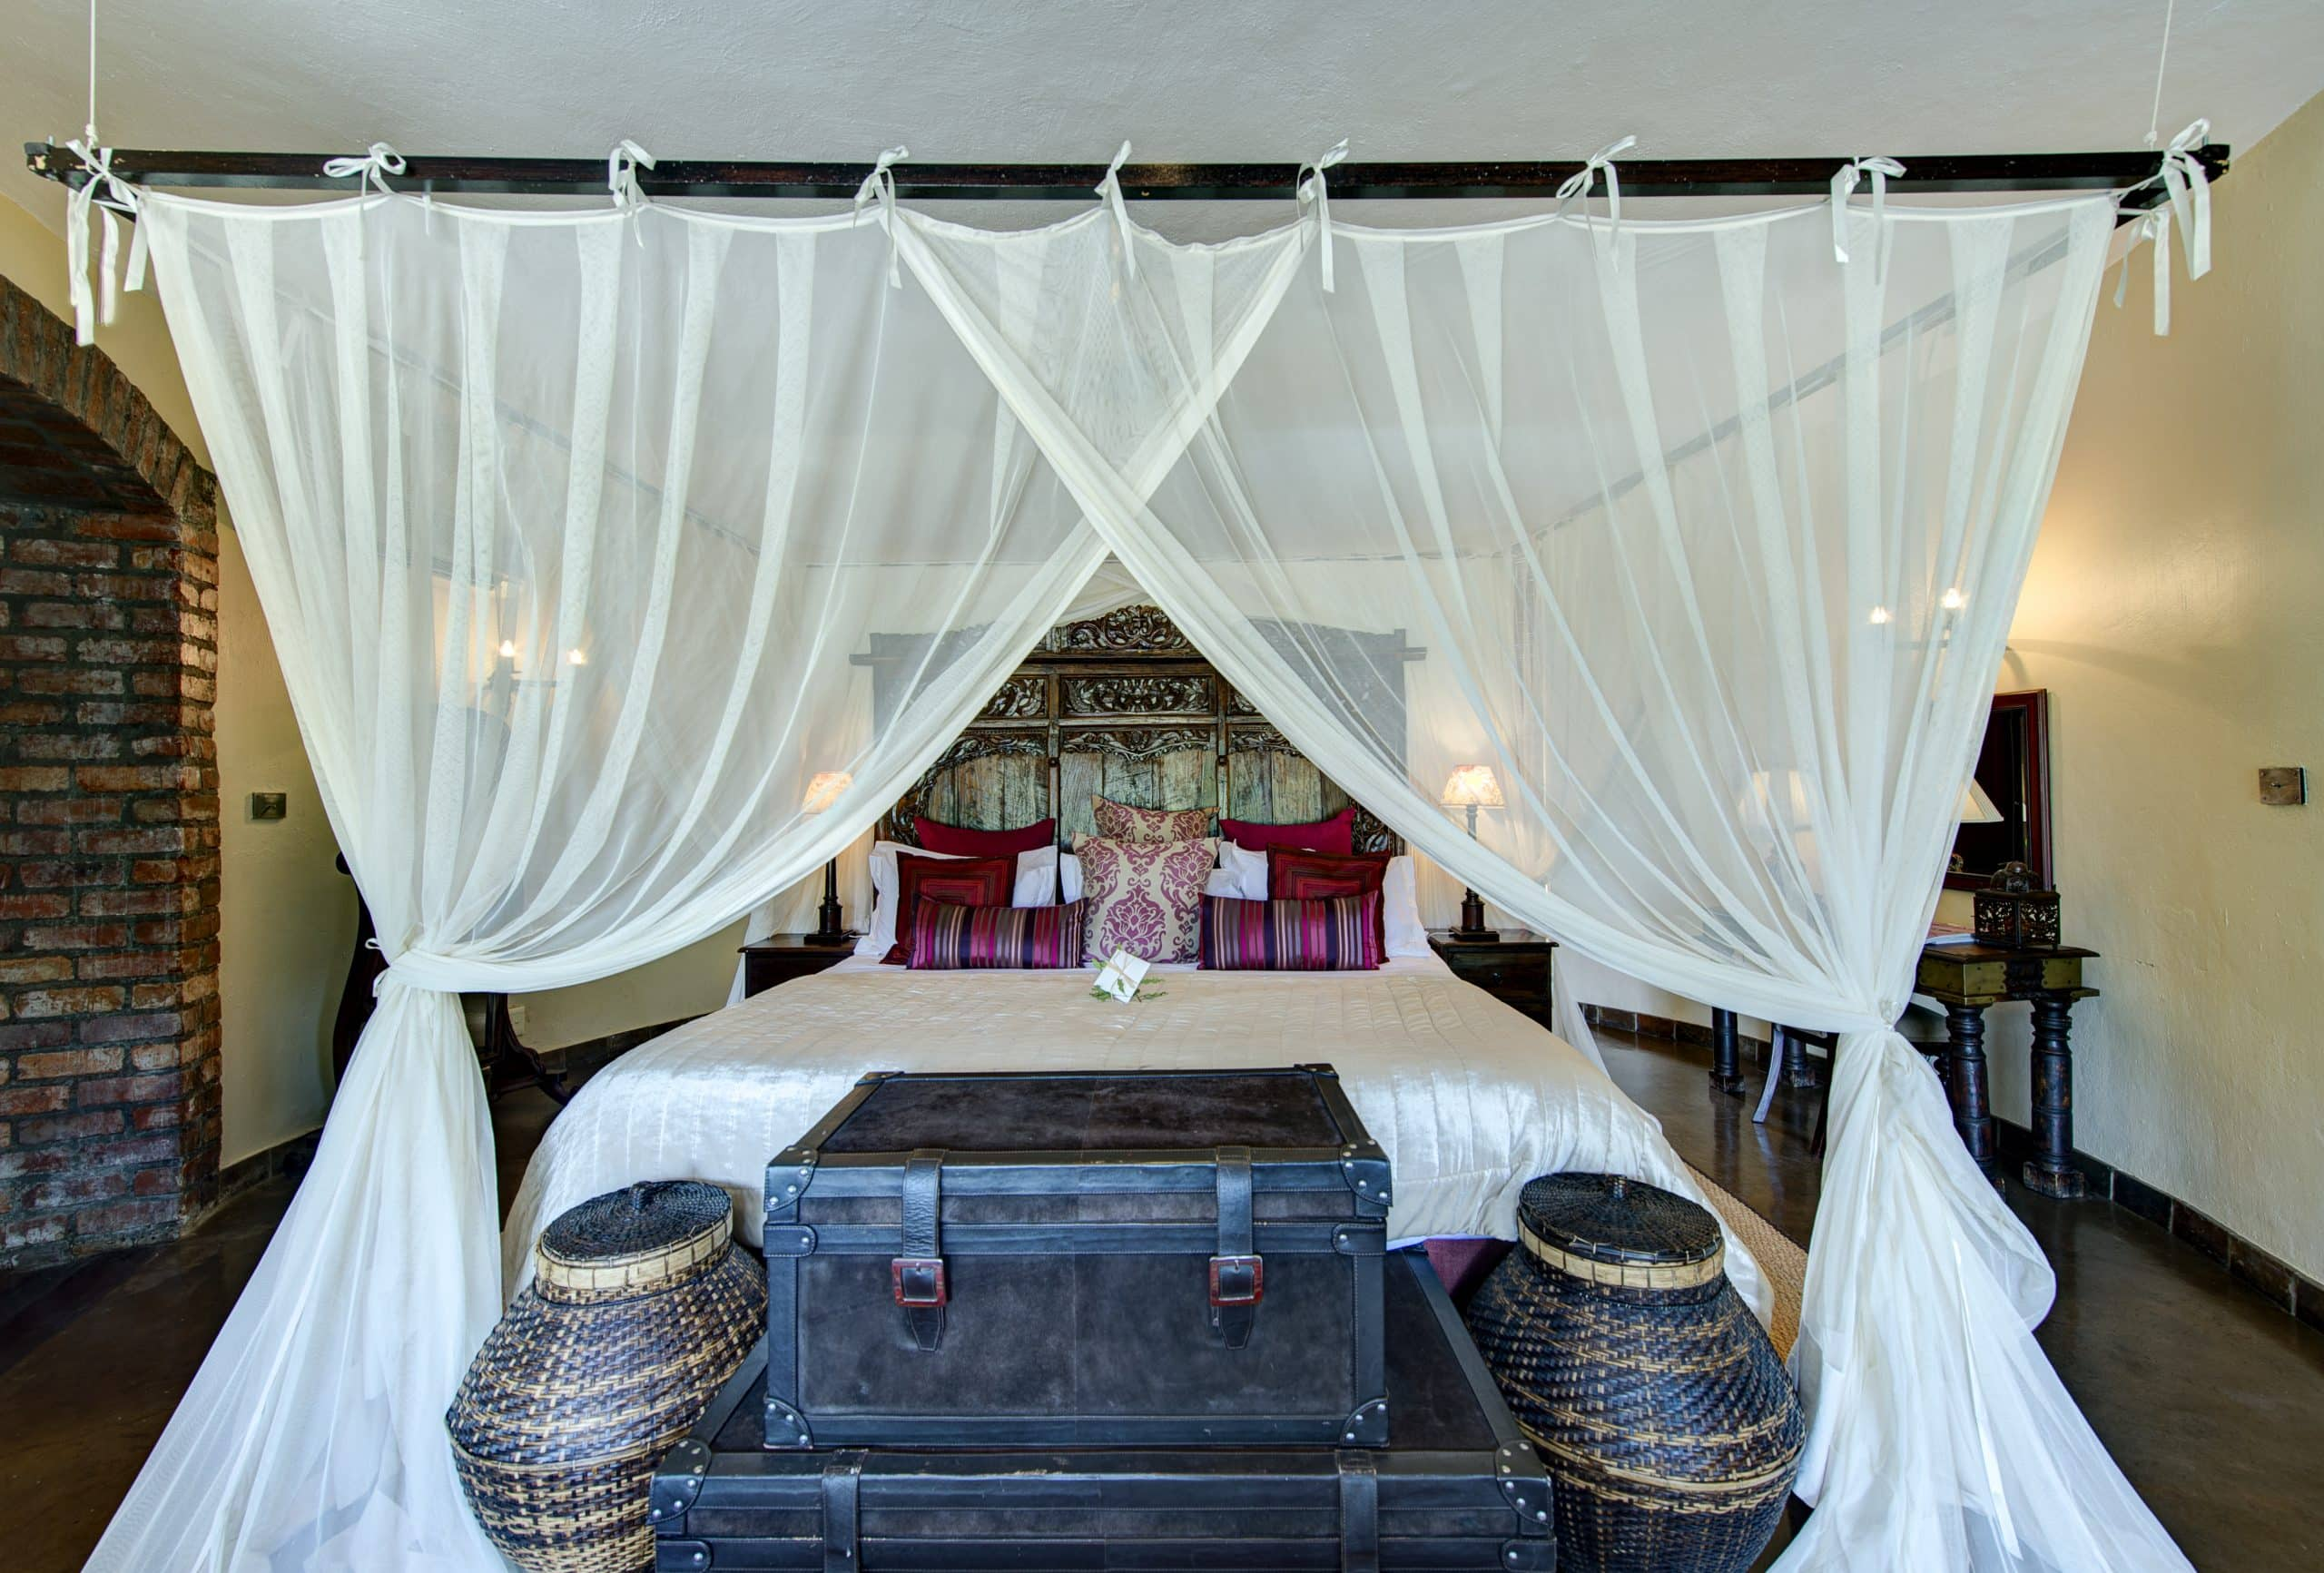 Explorer themed suites at Tintswalo Safari Lodge